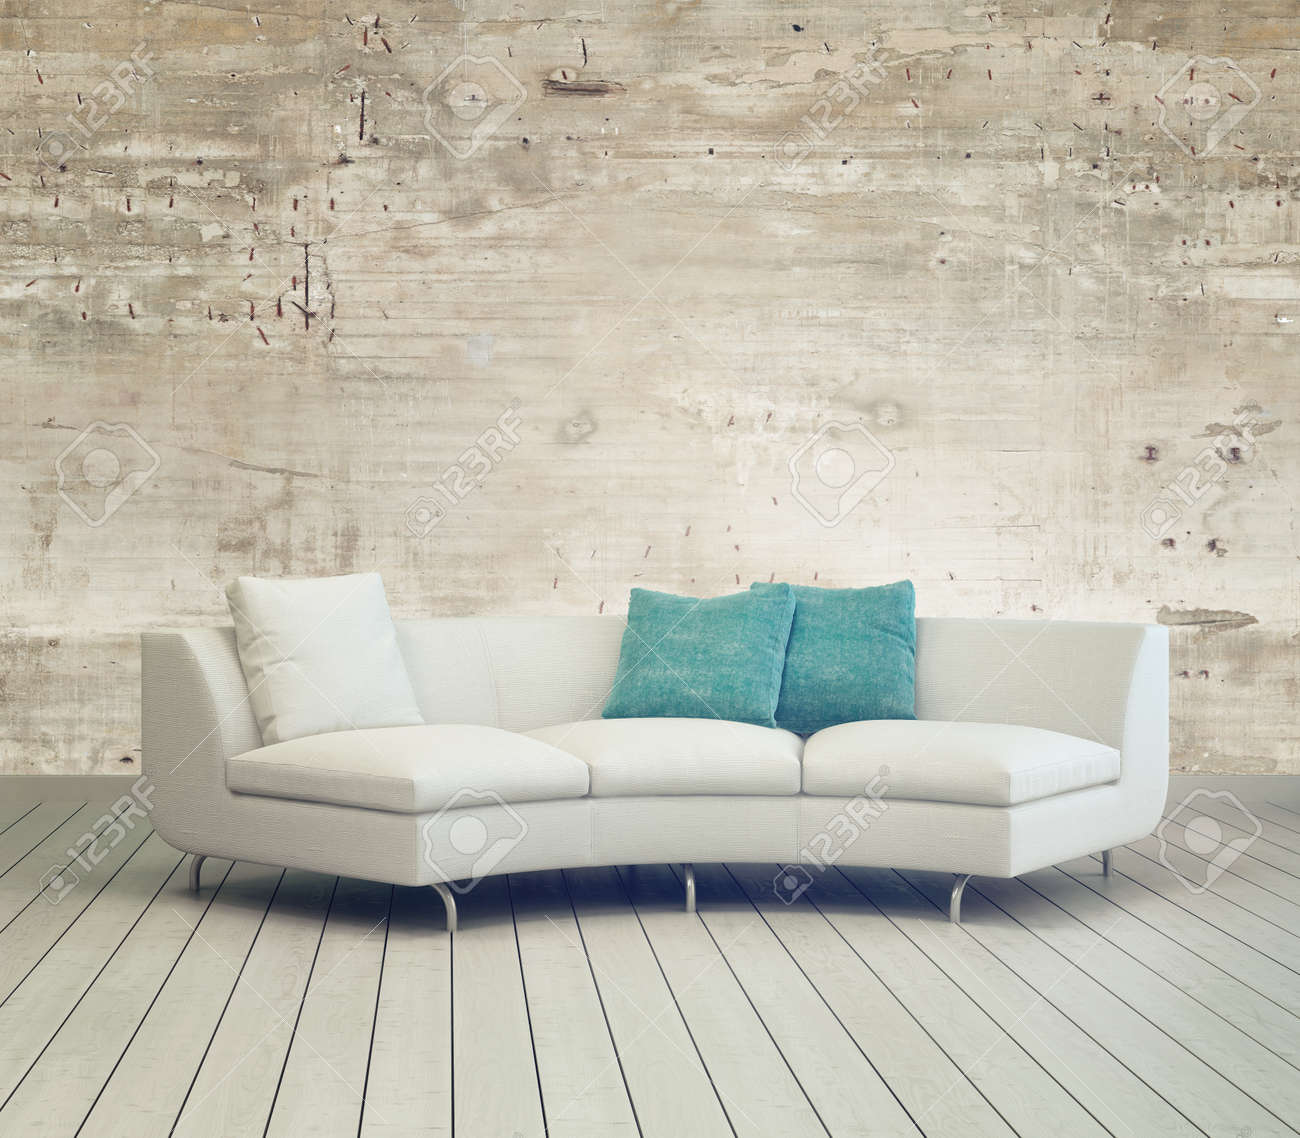 Living Room Background white couch furniture on cozy living room with unfinished wall